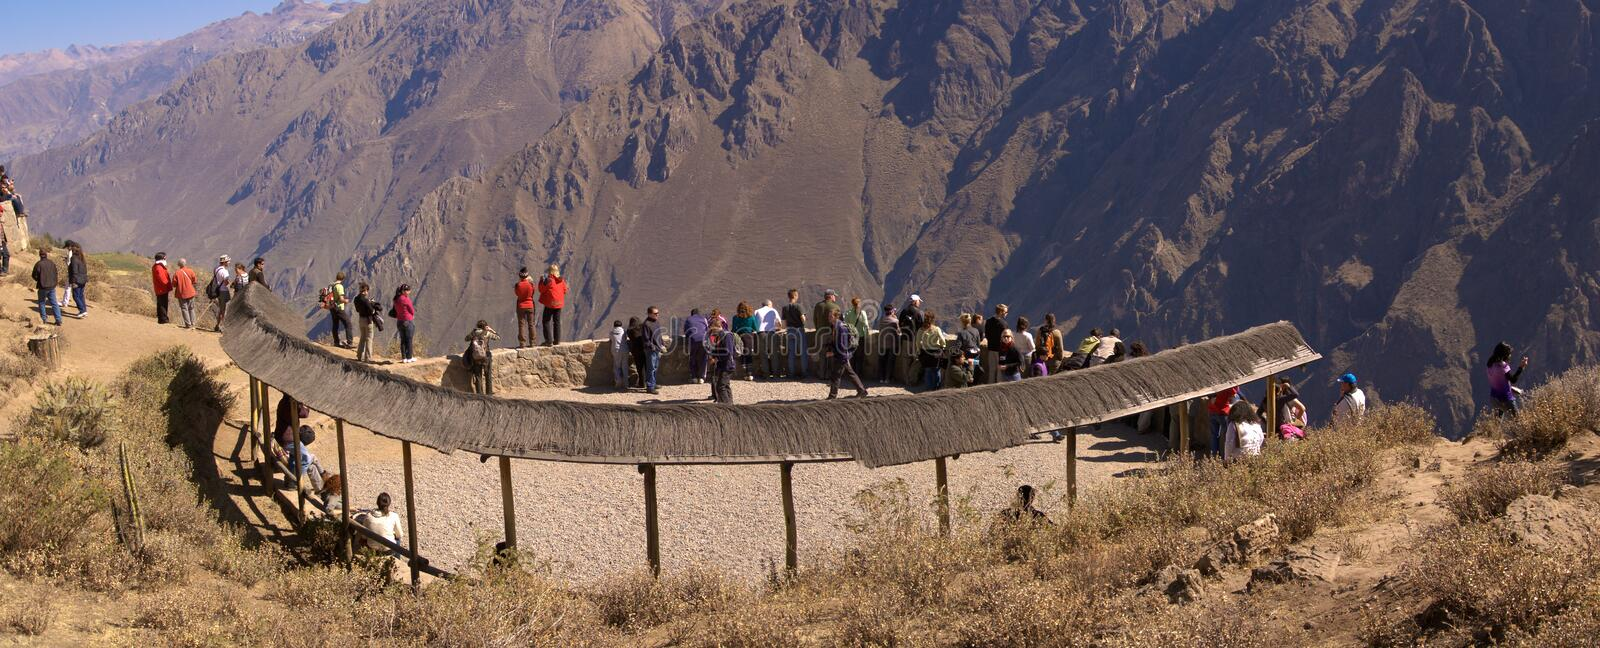 Colca Canyon Cruz del Condor viewpoint stock images